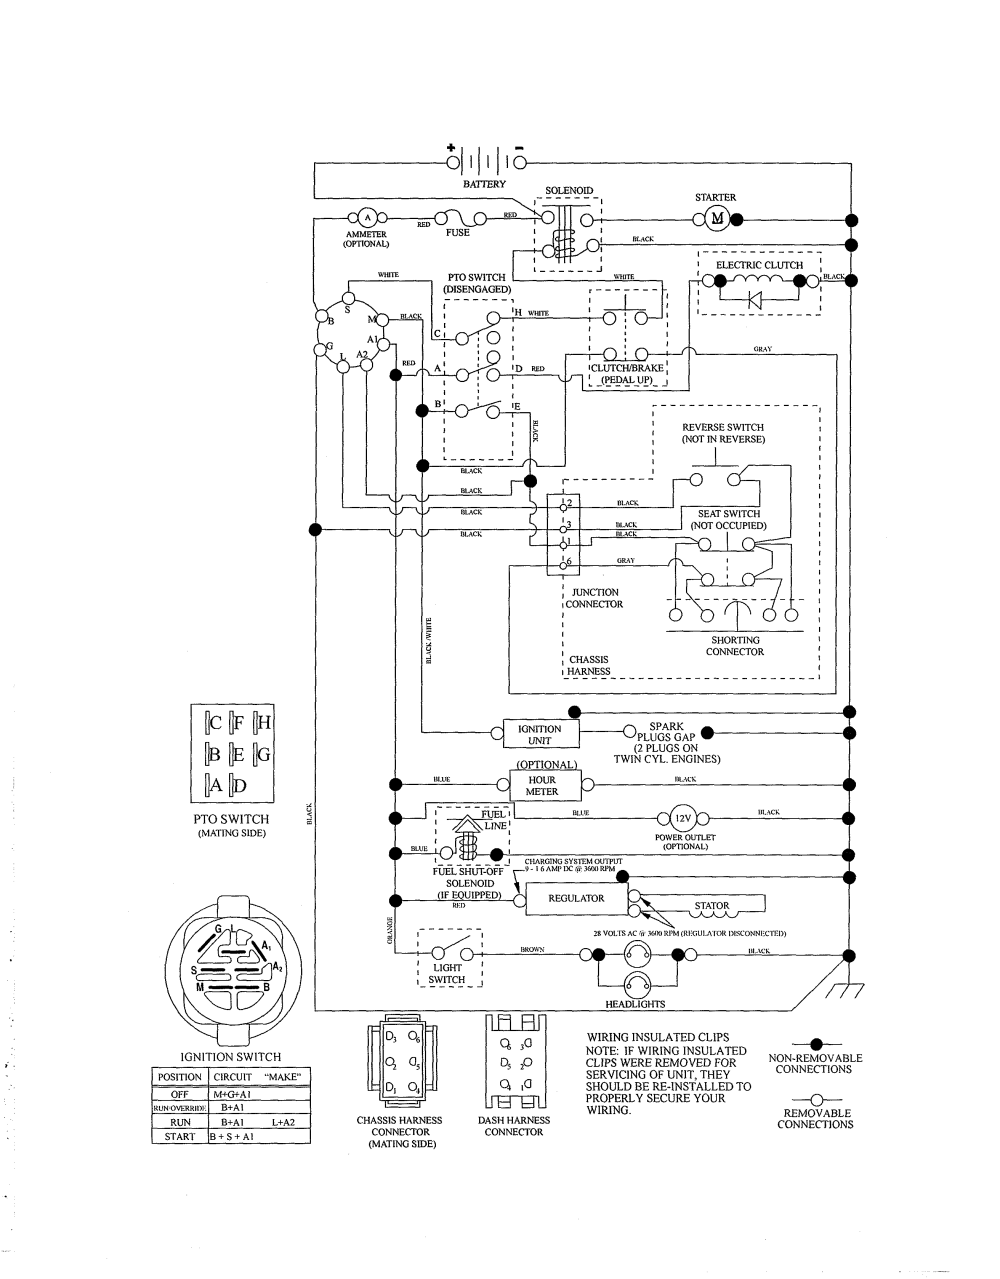 medium resolution of husqvarna wiring schematic blog wiring diagram looking for husqvarna model 96043018200 front engine lawn tractor husqvarna